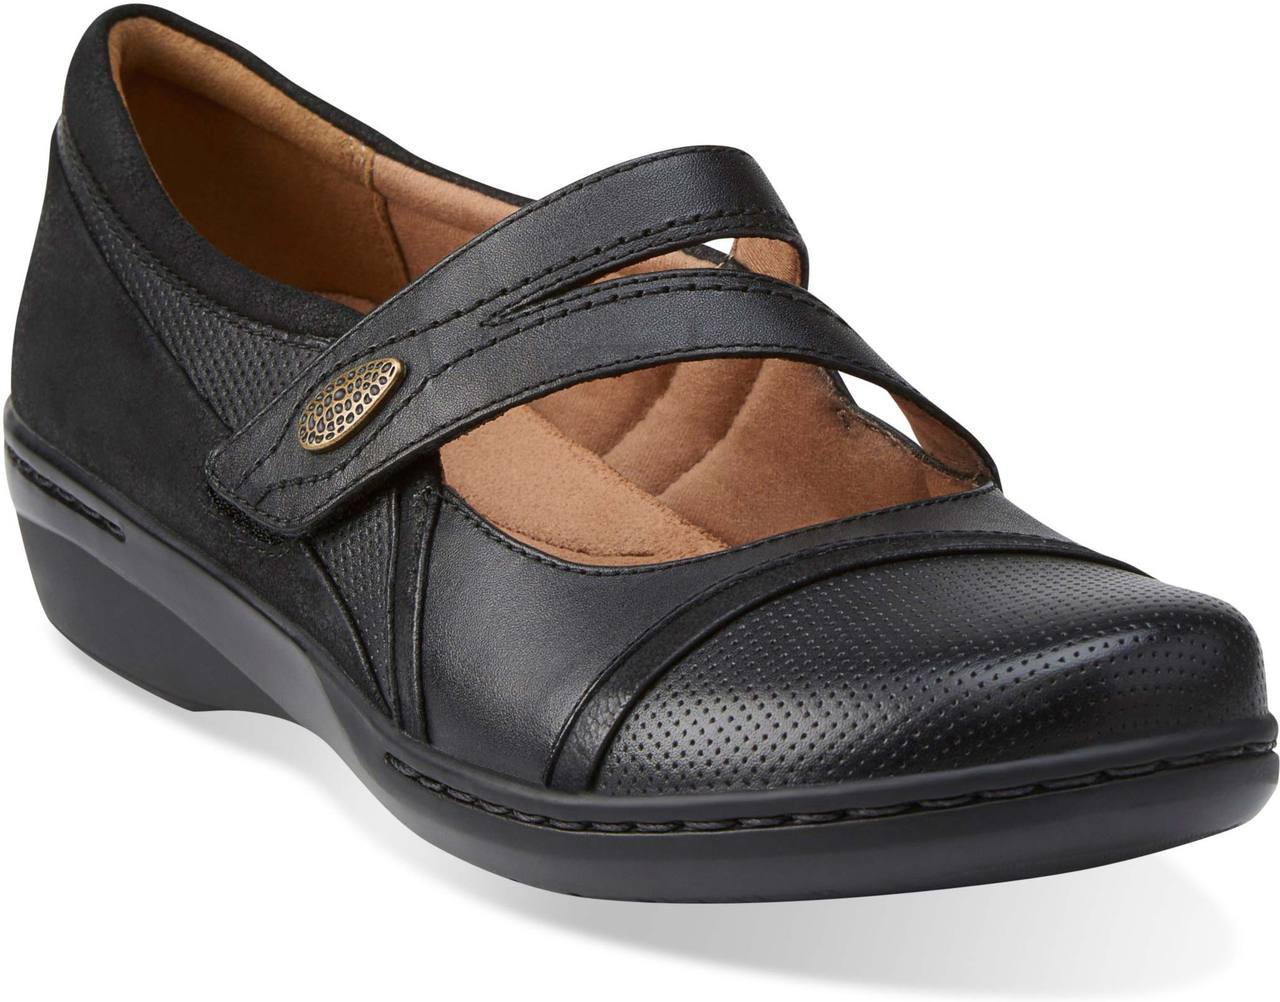 Clarks Womens Casual Clarks Evianna Crown Leather Shoes In Black GE_3048